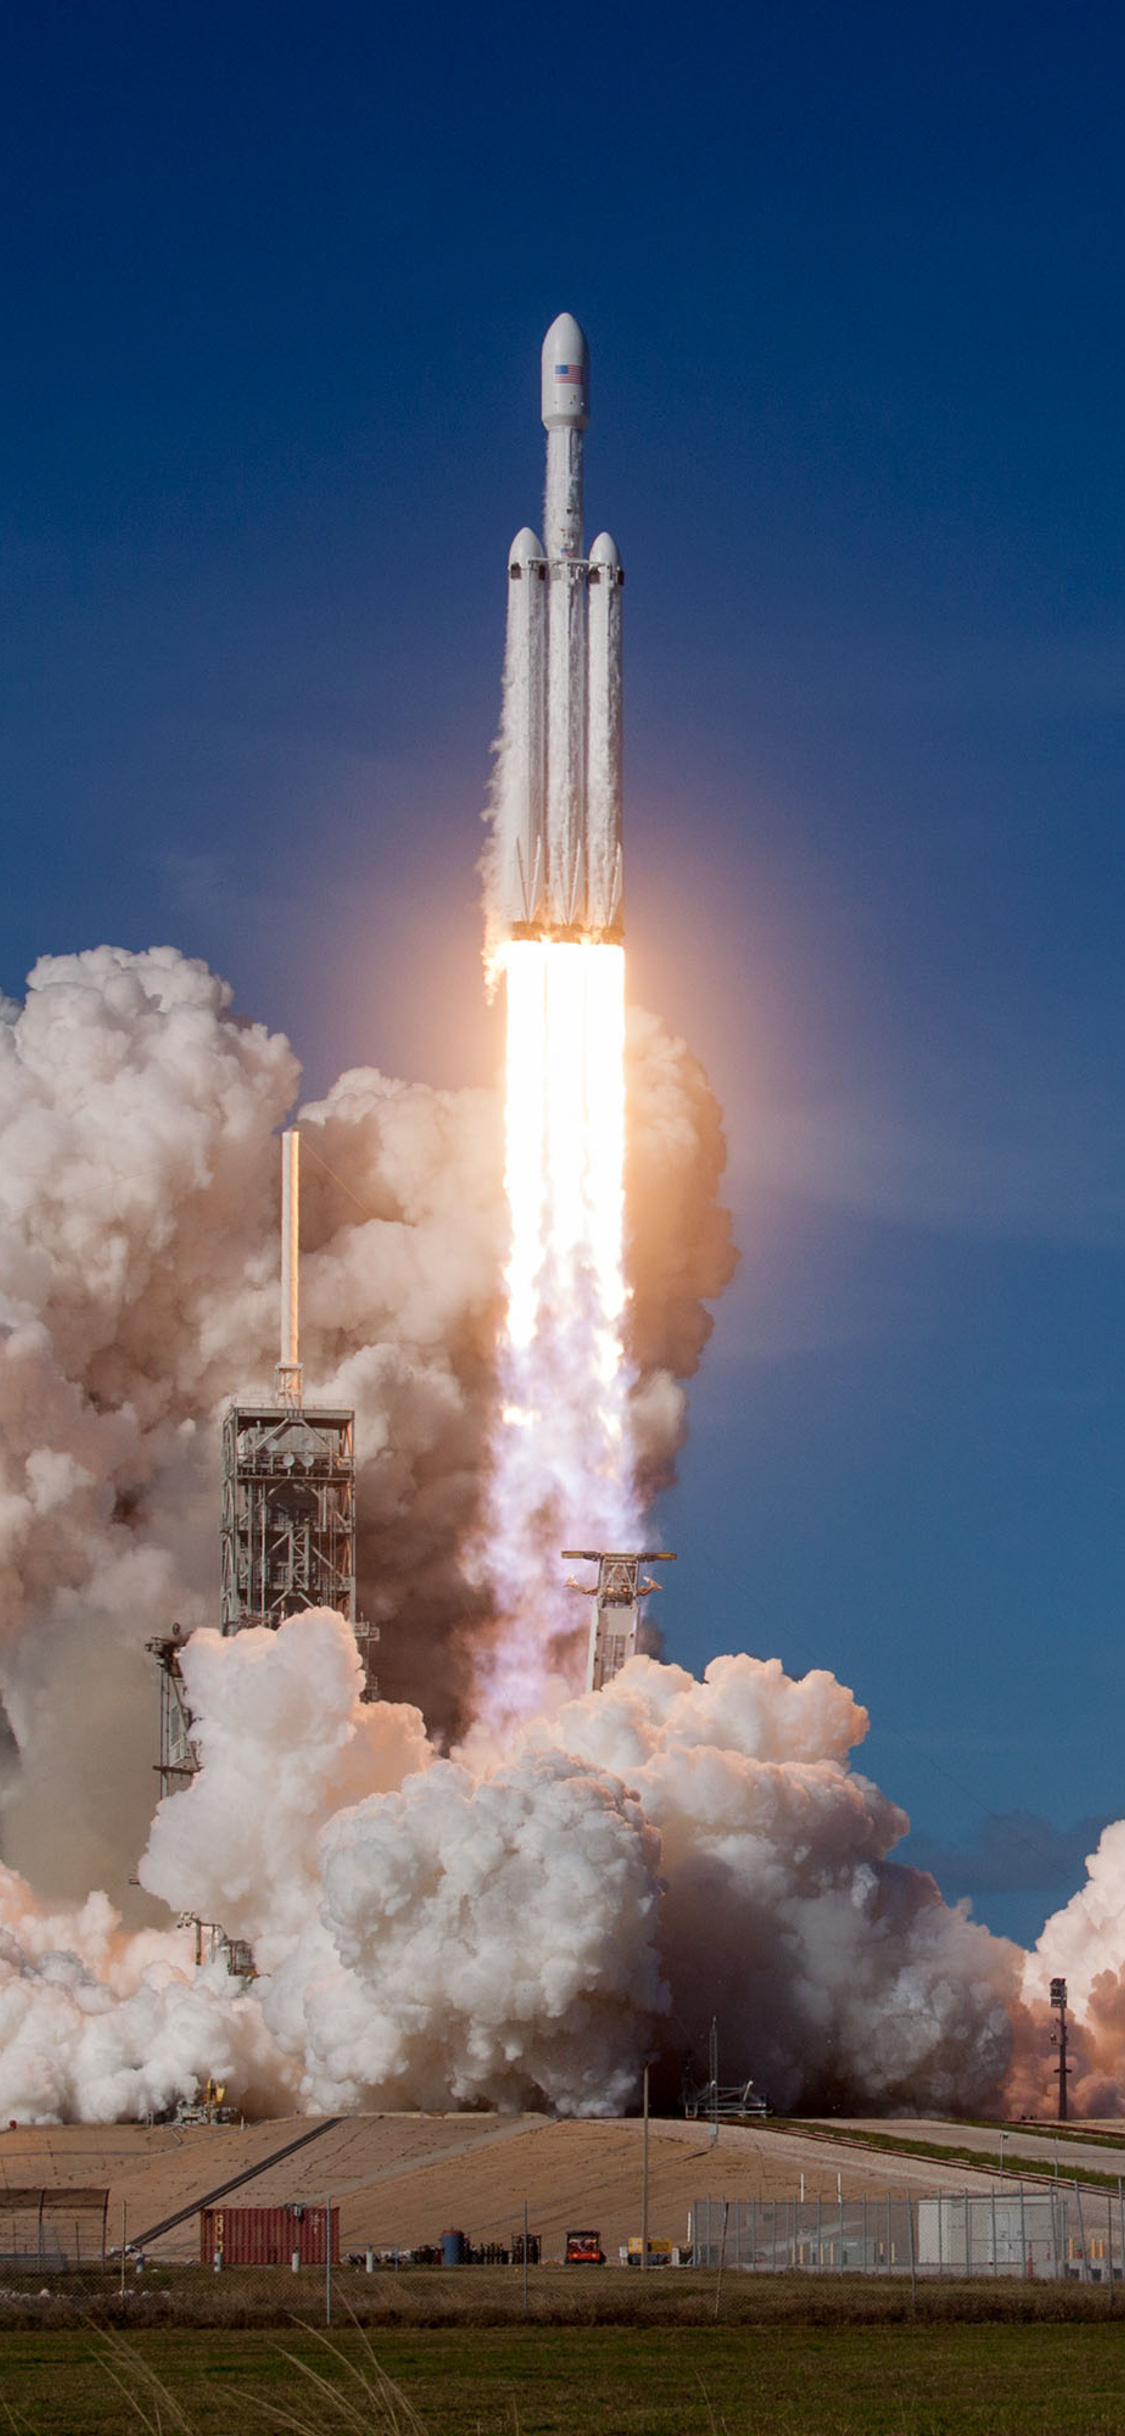 1125x2436 Falcon Heavy Space X 2018 Iphone XIphone 10 HD 4k Wallpapers Images Backgrounds Photos And Pictures